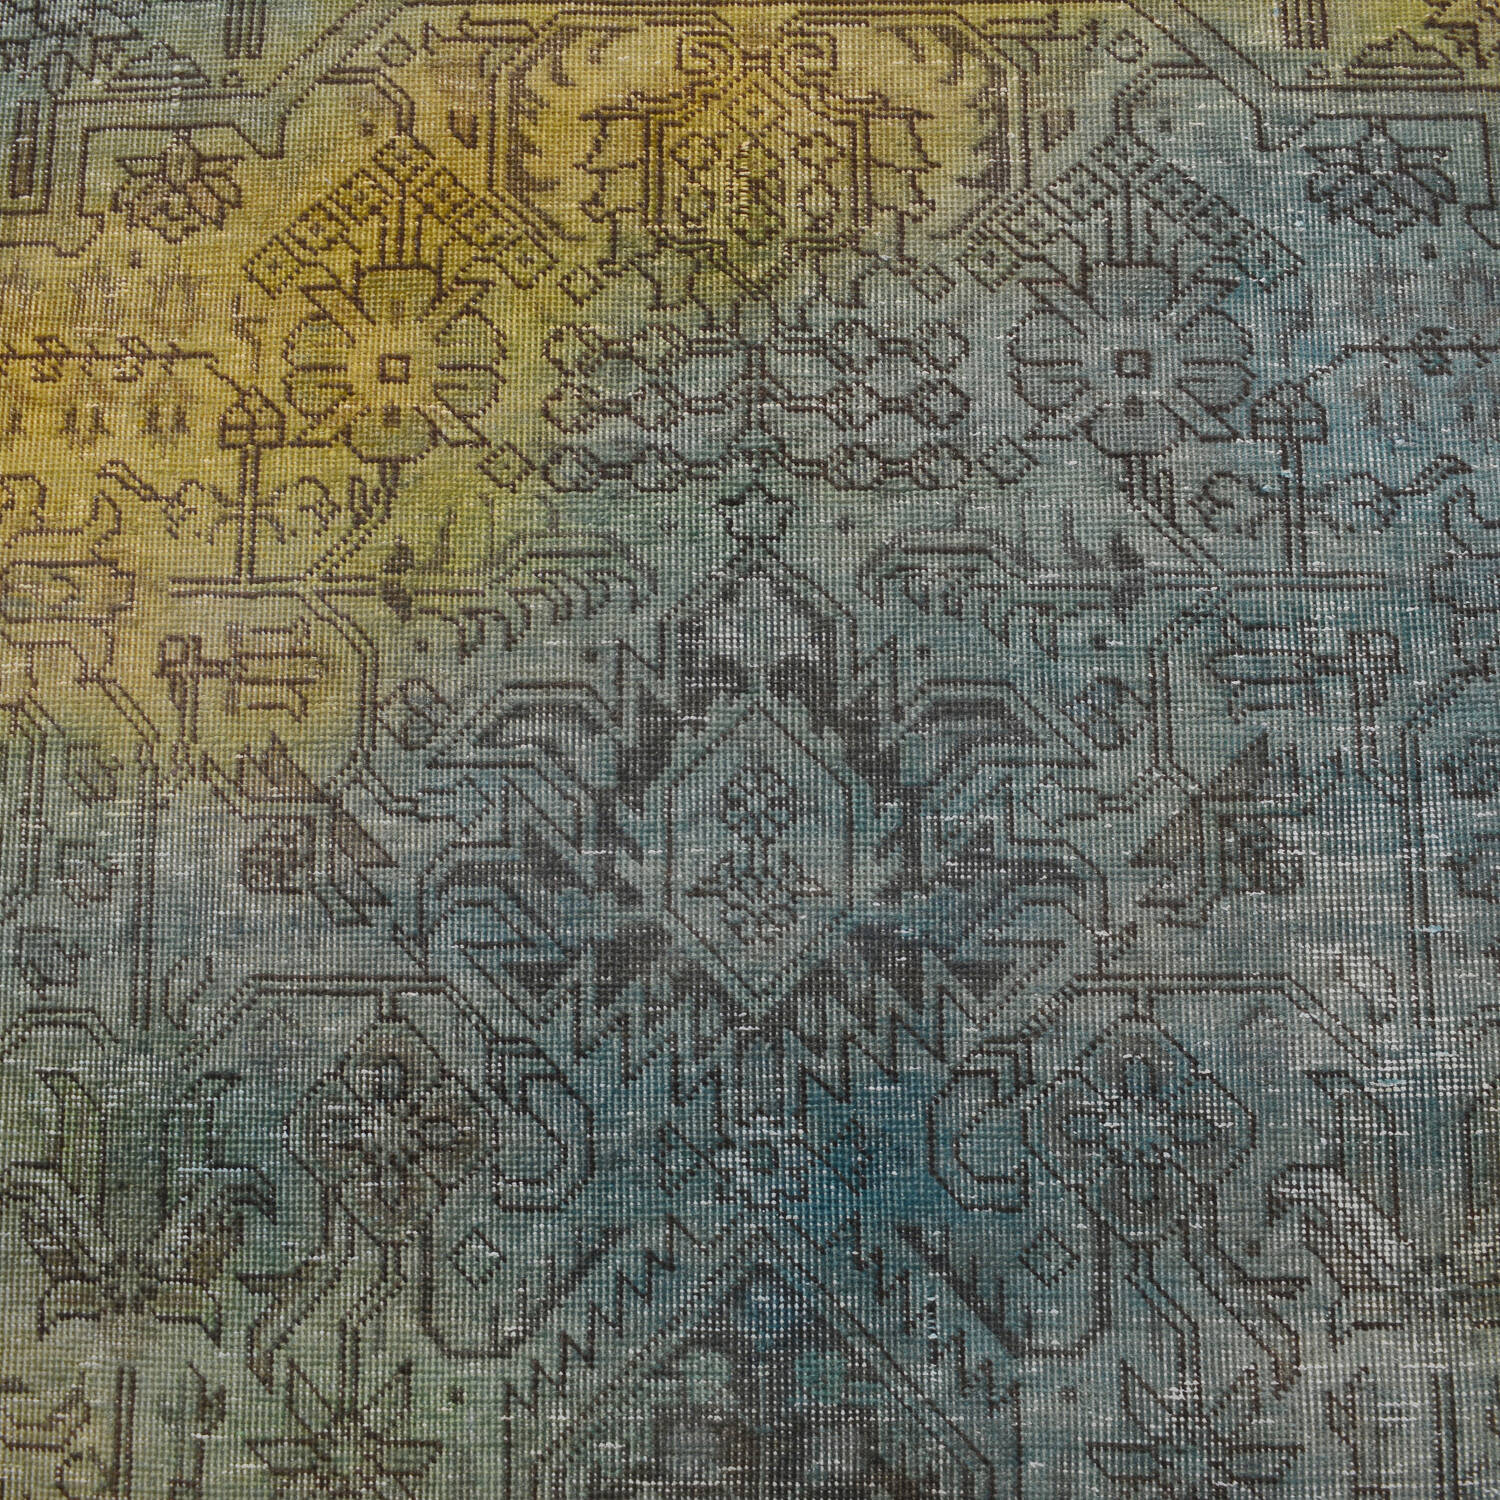 Antique Over Dyed Geometric Tabriz Persian Area Rug 10x13 image 4